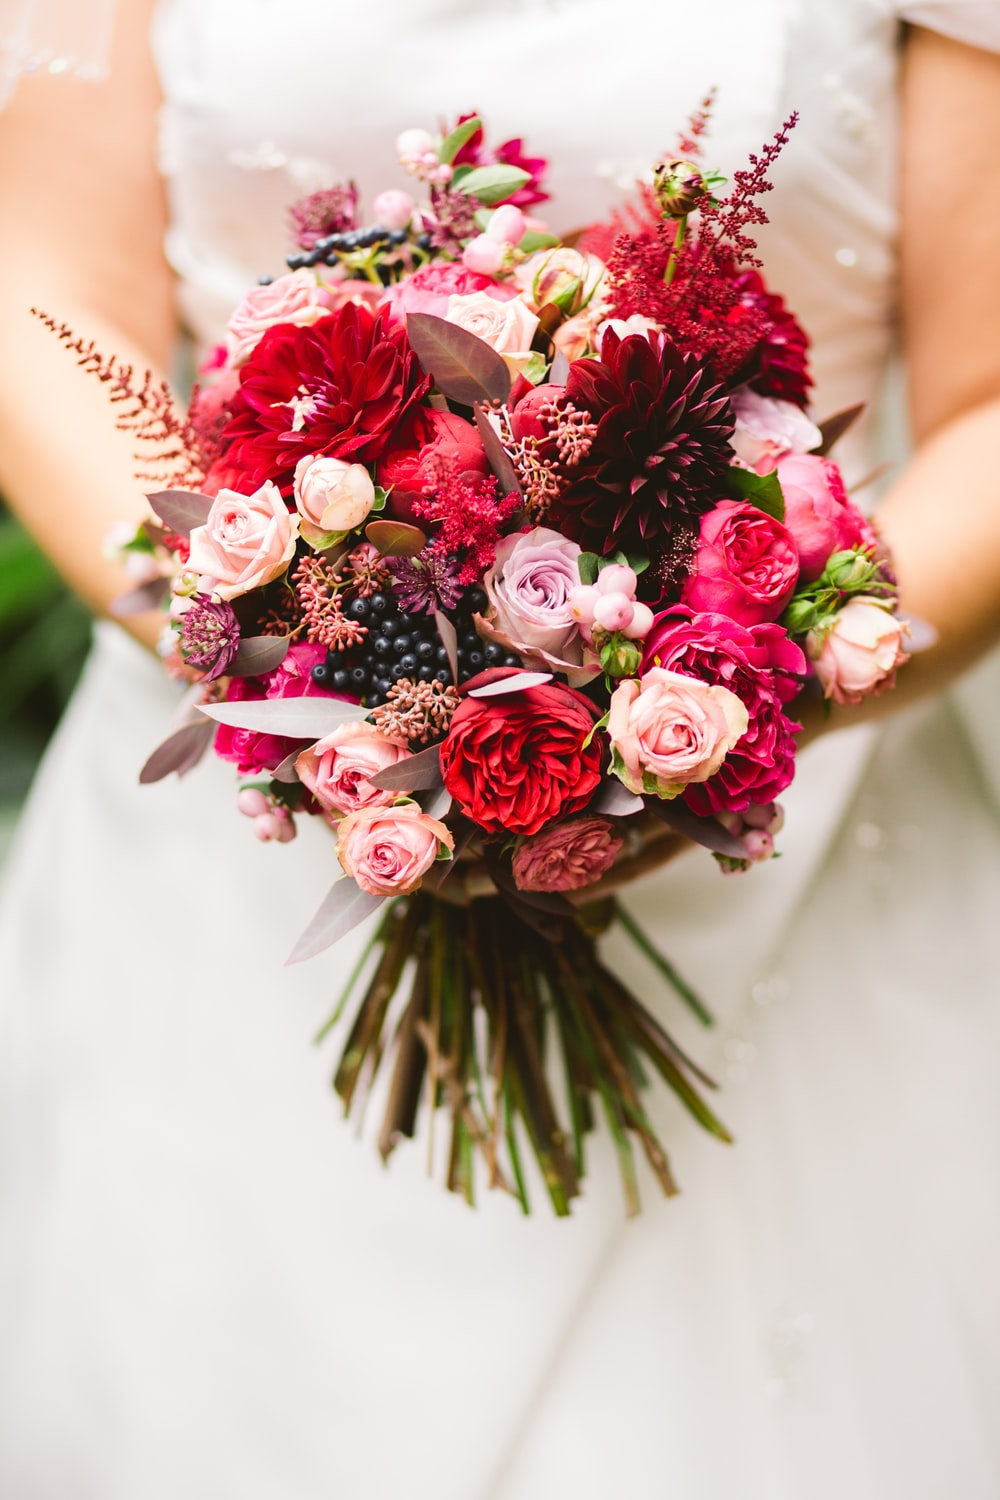 100 flower images hq download free flower pictures on unsplash bride holding flower bouquet izmirmasajfo